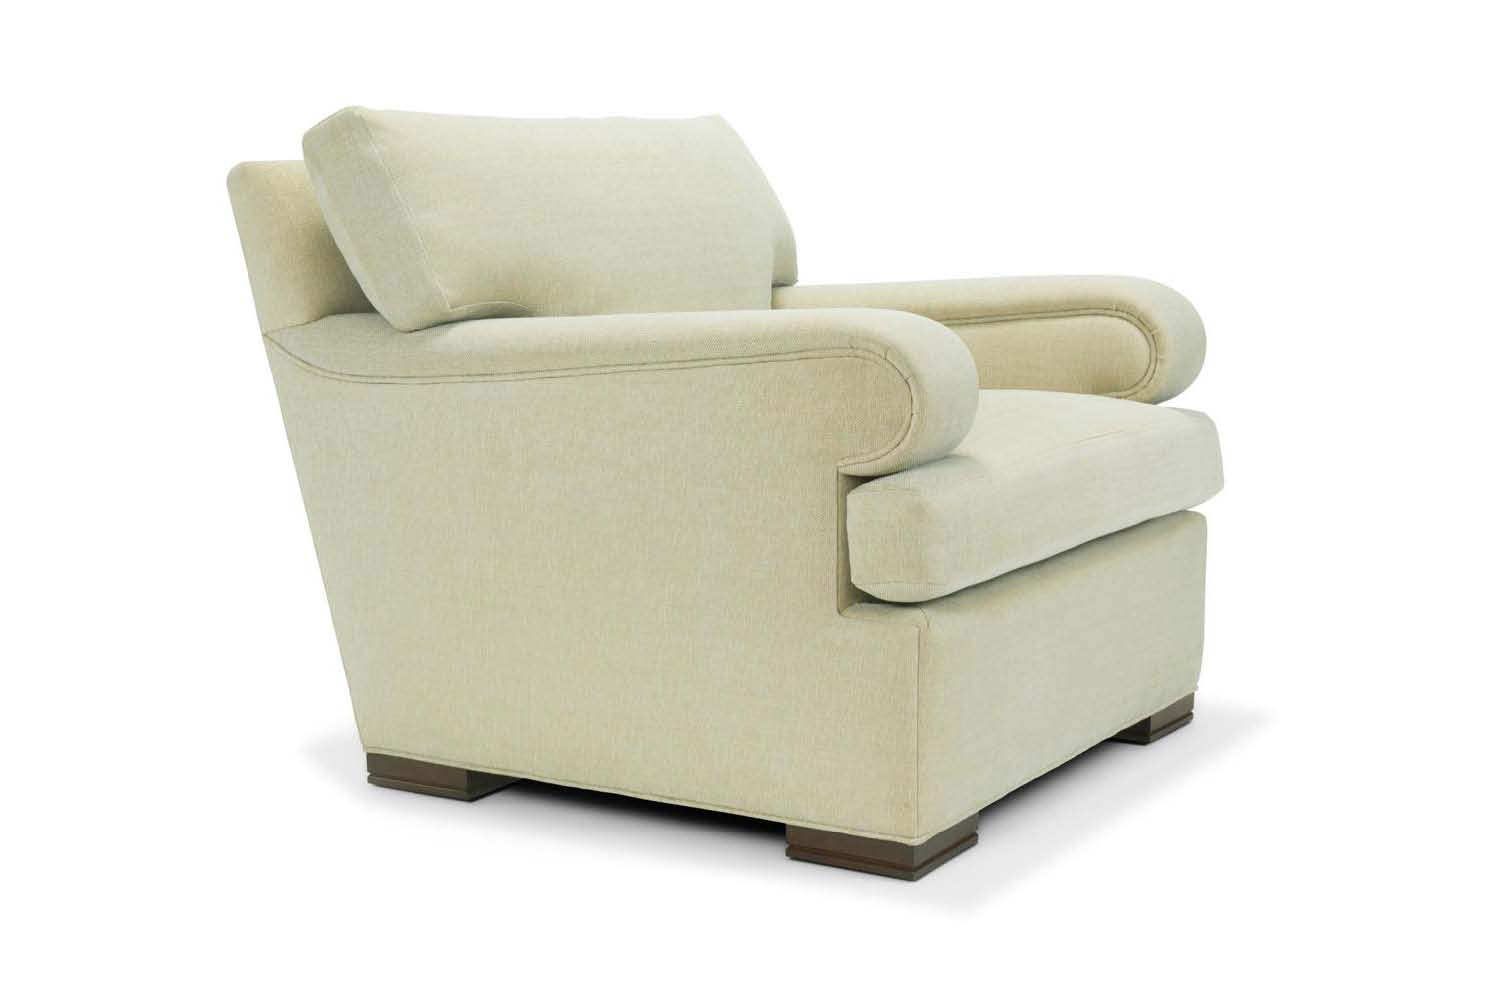 FRONTERA LOUNGE CHAIR